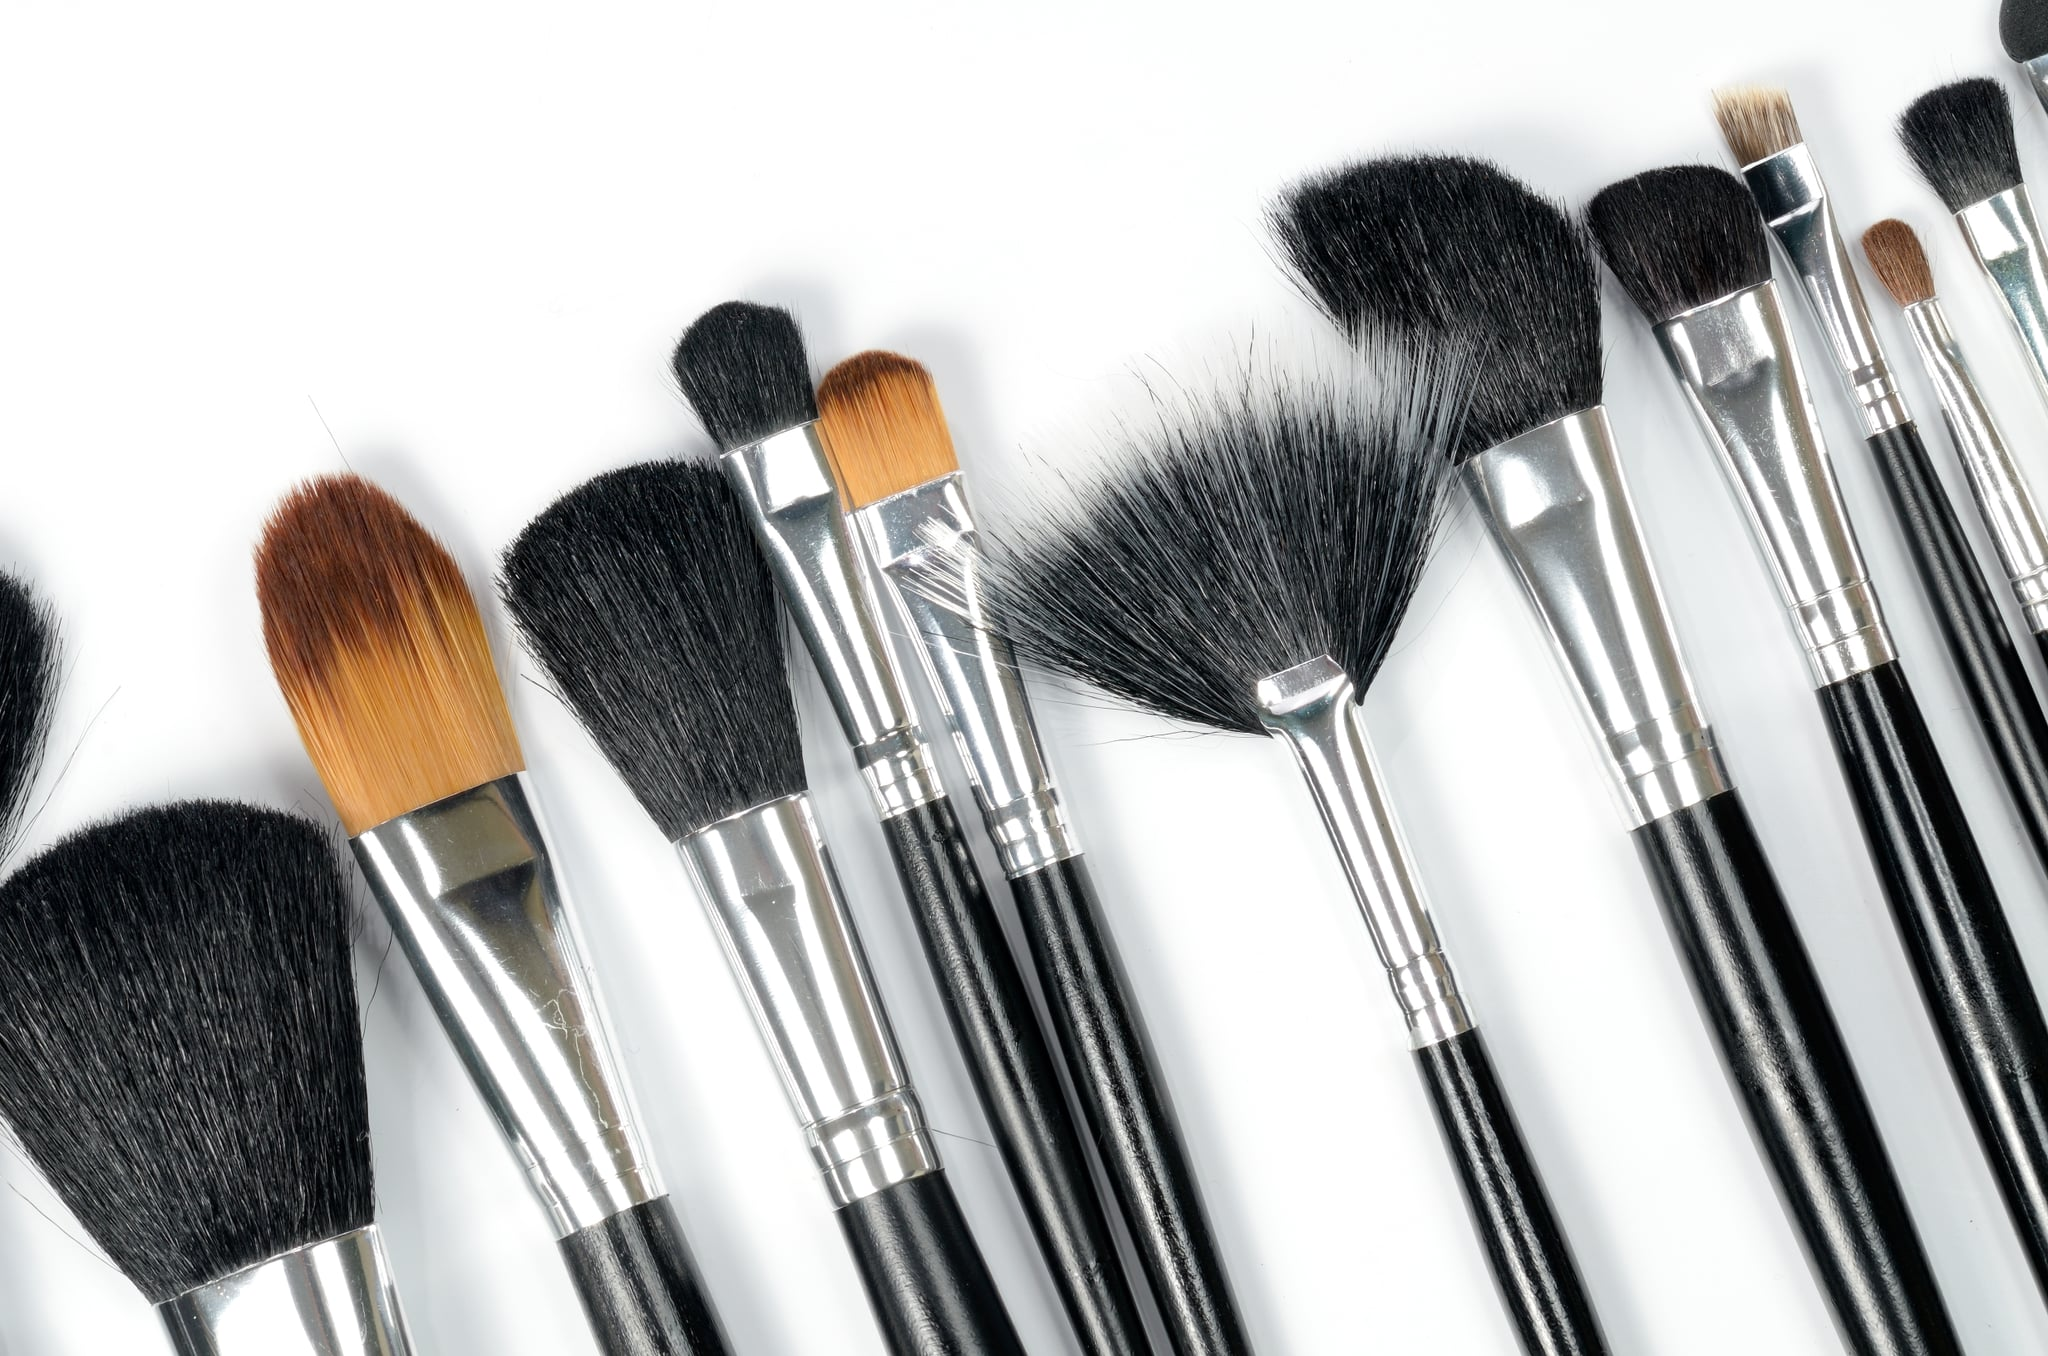 how to clean makeup brushes with coconut oil. now clean your makeup brushes by gently rubbing them against coconut oil while washing under how to with